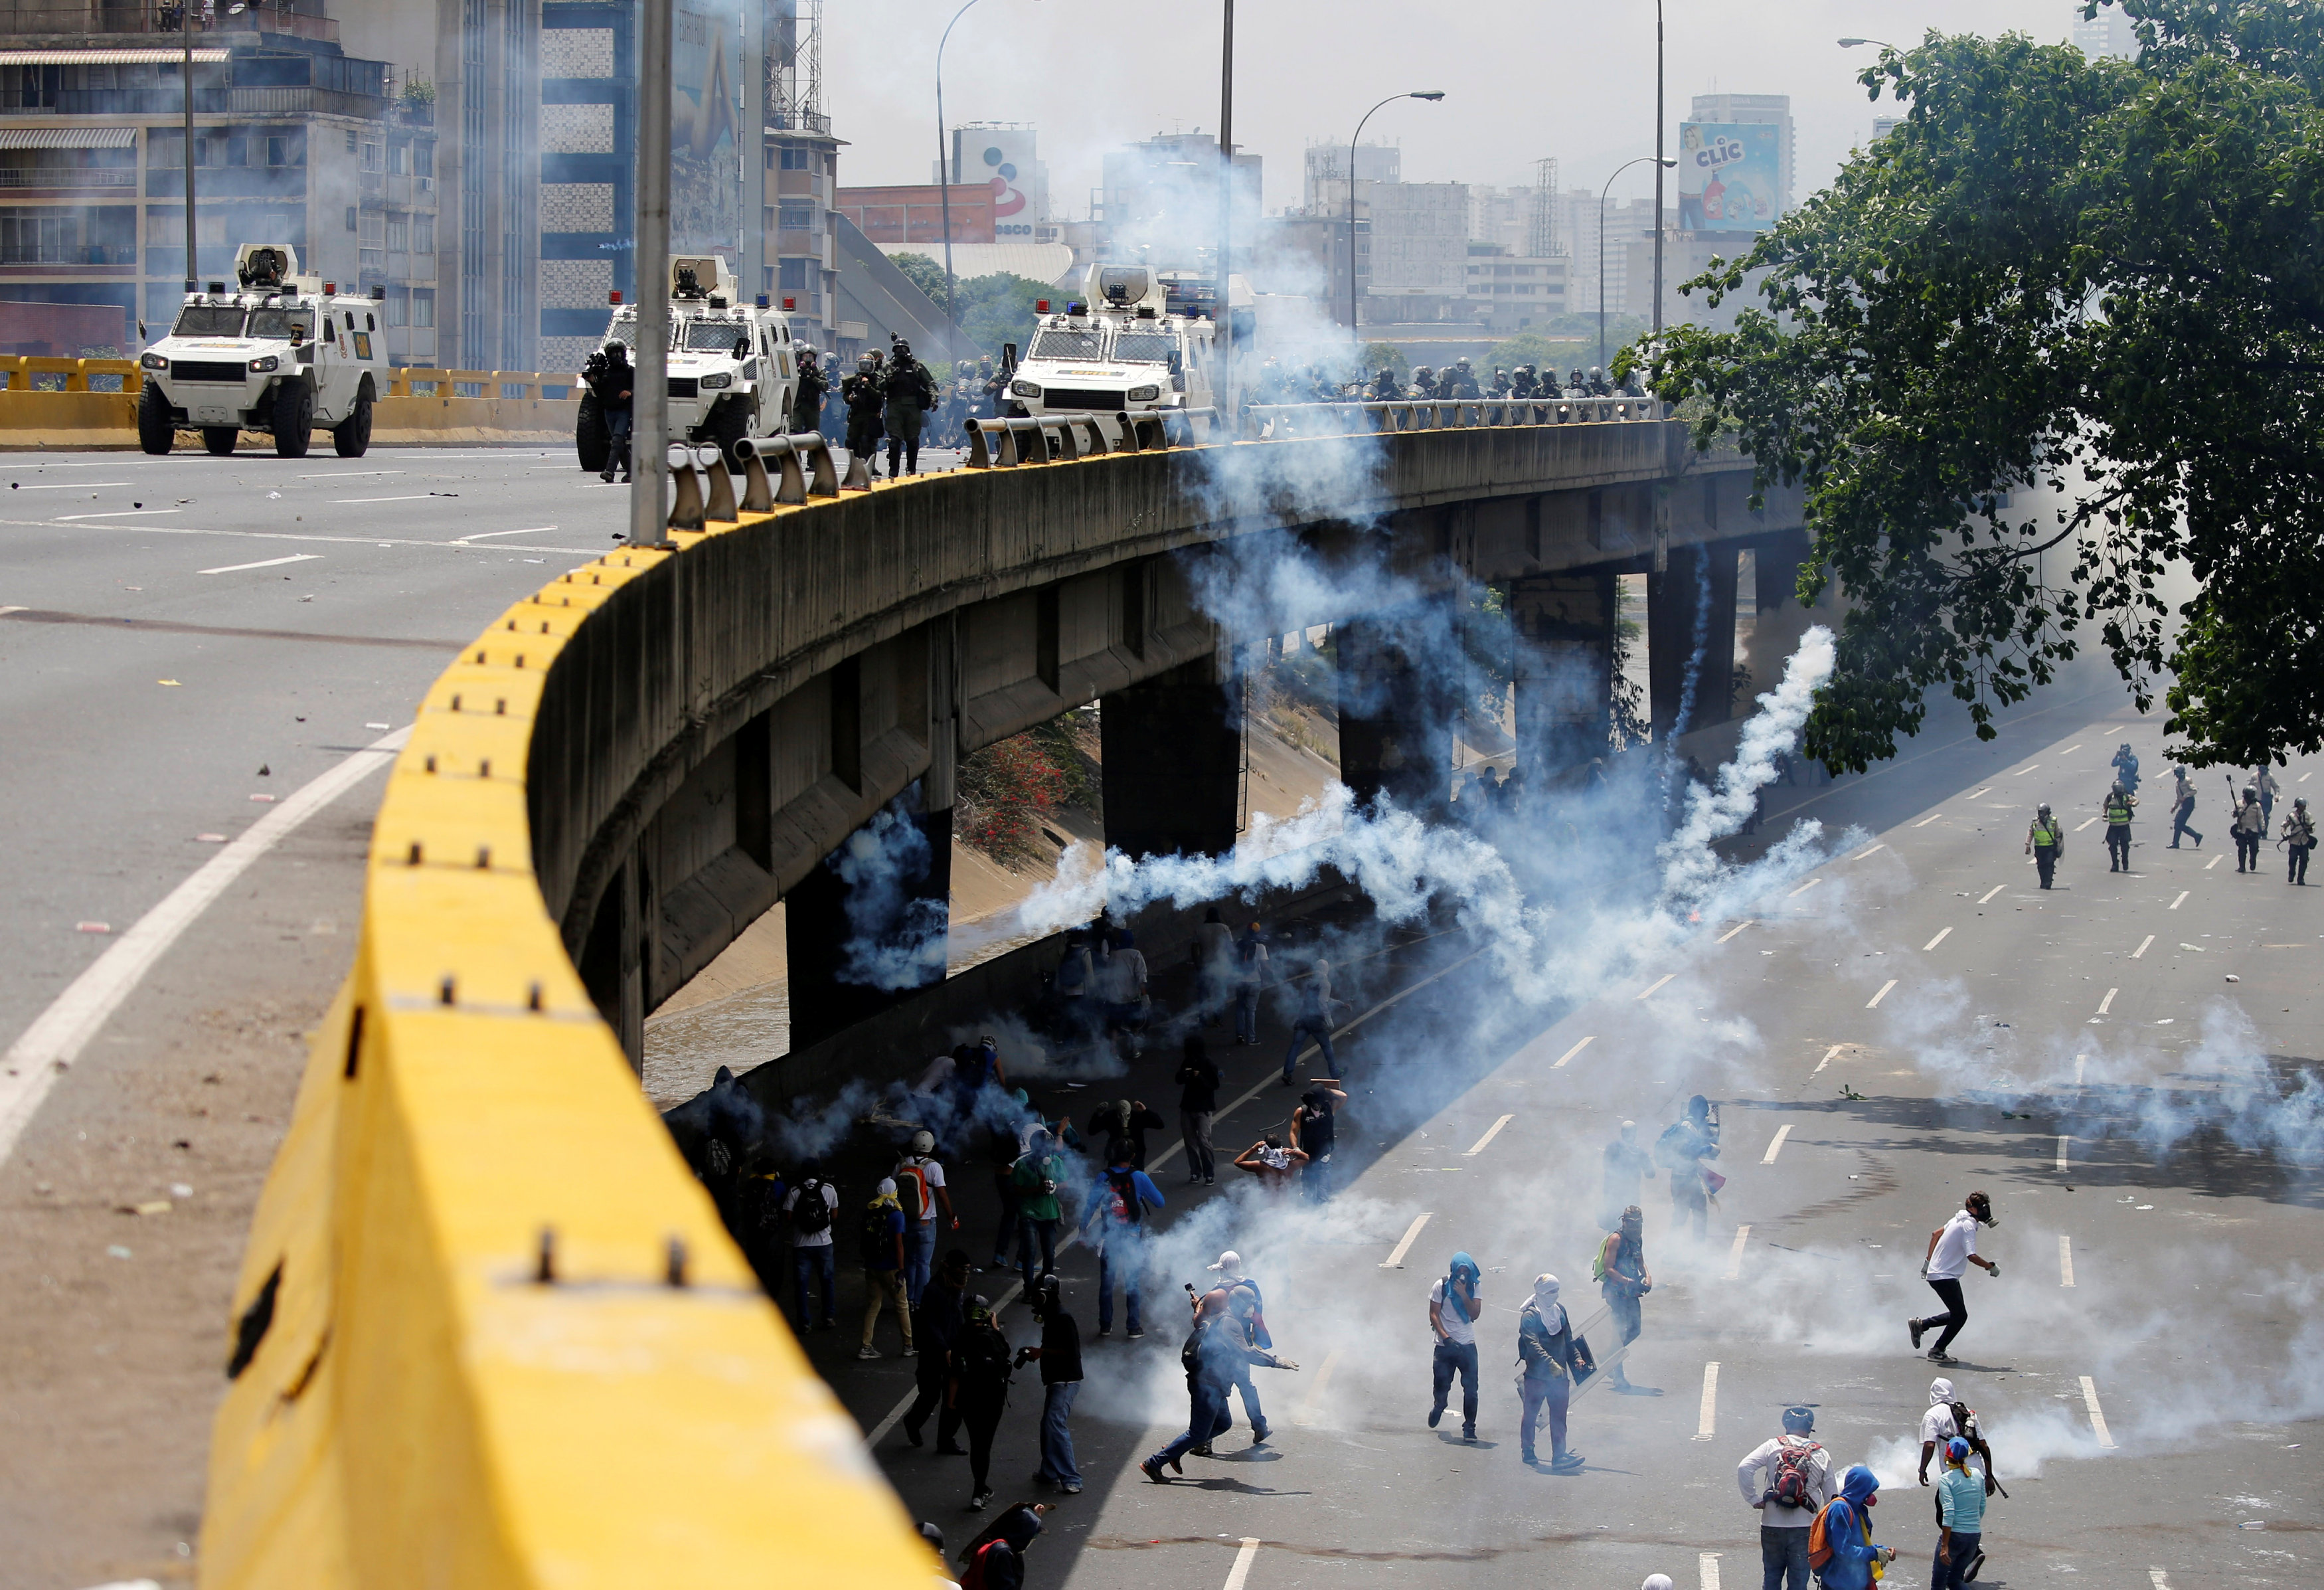 """Demonstrators clash with riot police during the so-called """"mother of all marches"""" against Venezuela's President Nicolas Maduro in Caracas, Venezuela on April 19, 2017. (REUTERS/Carlos Garcia Rawlins)"""